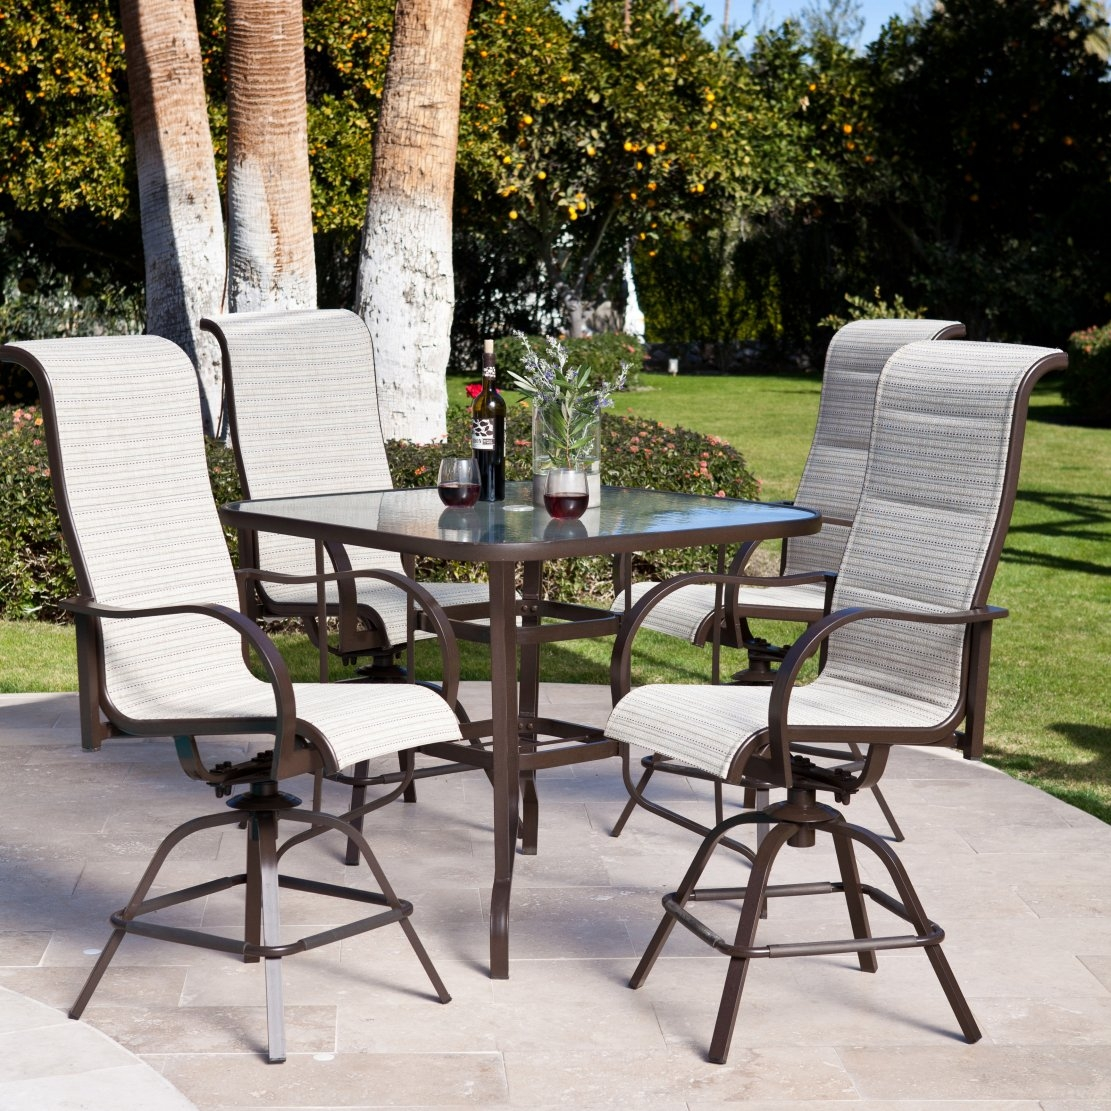 5-Piece Patio Furniture Dining Set with Bar Height Sling Seats, DBHDS949 :  Don't be surprised if your friends start dressing a lot nicer for casual backyard barbecues at your house when you set up this 5-Piece Patio Furniture Dining Set with Bar Height Sling Seats in your outdoor entertaining space. Up to four of your friends will be able to sit for hours in the cozy weather-resistant sling seats that come in a wide selection of colors. The sleek mocha-colored bases on the chairs and table are made of powder-coated aluminum, meaning this beautiful dining set will resist all types of weather conditions. Chair and table frames are all-weather and rust-resistant; Quick-dry fabric makes these chairs perfect for outdoor use; Padded sling seats available in a choice of colors; Comfortably seats up to 4 people.